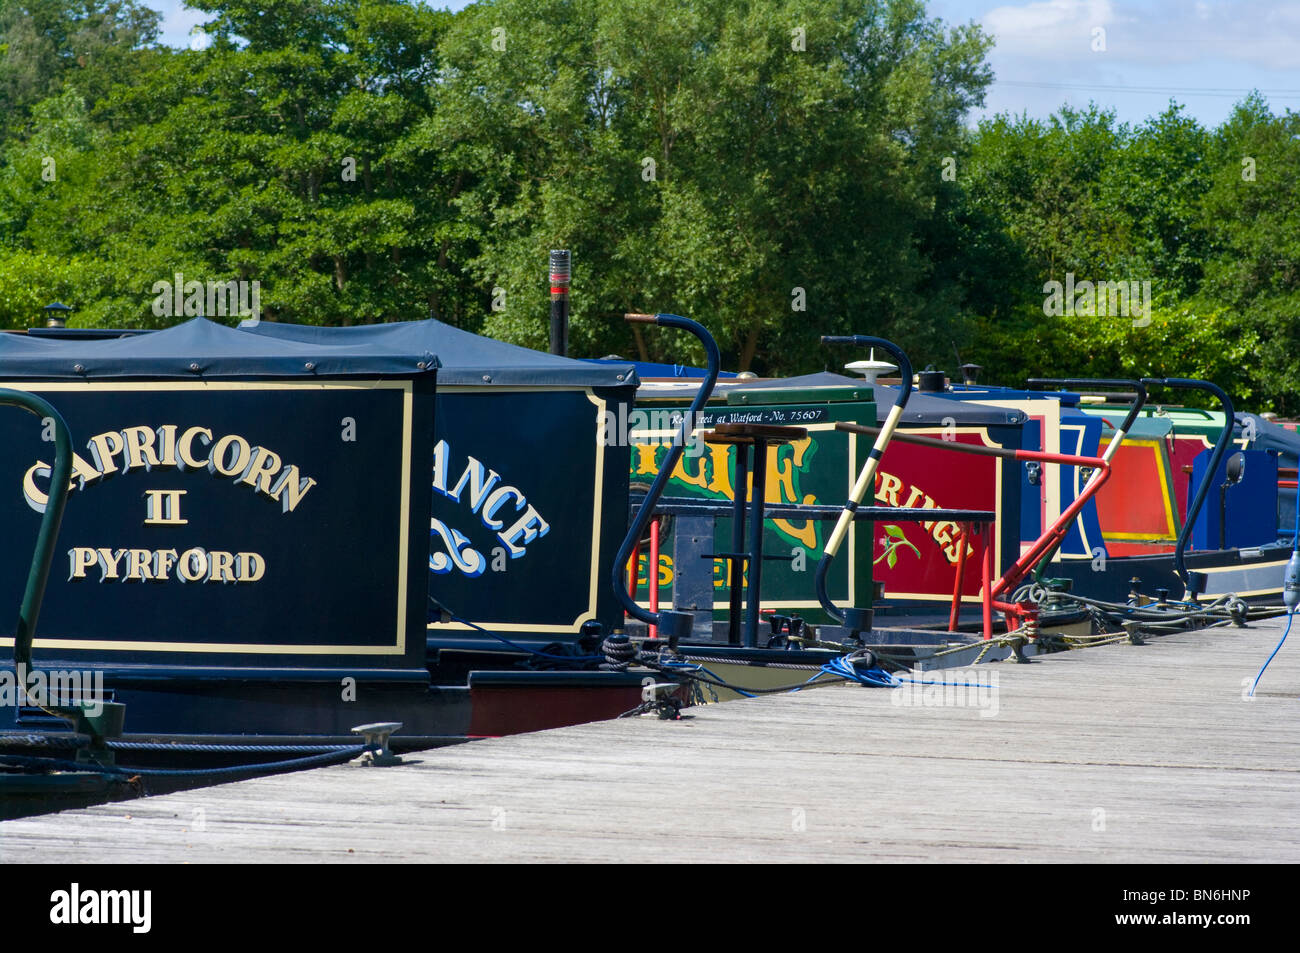 Colourful Narrowboat Name Plates and Swans Neck Tillers - Stock Image